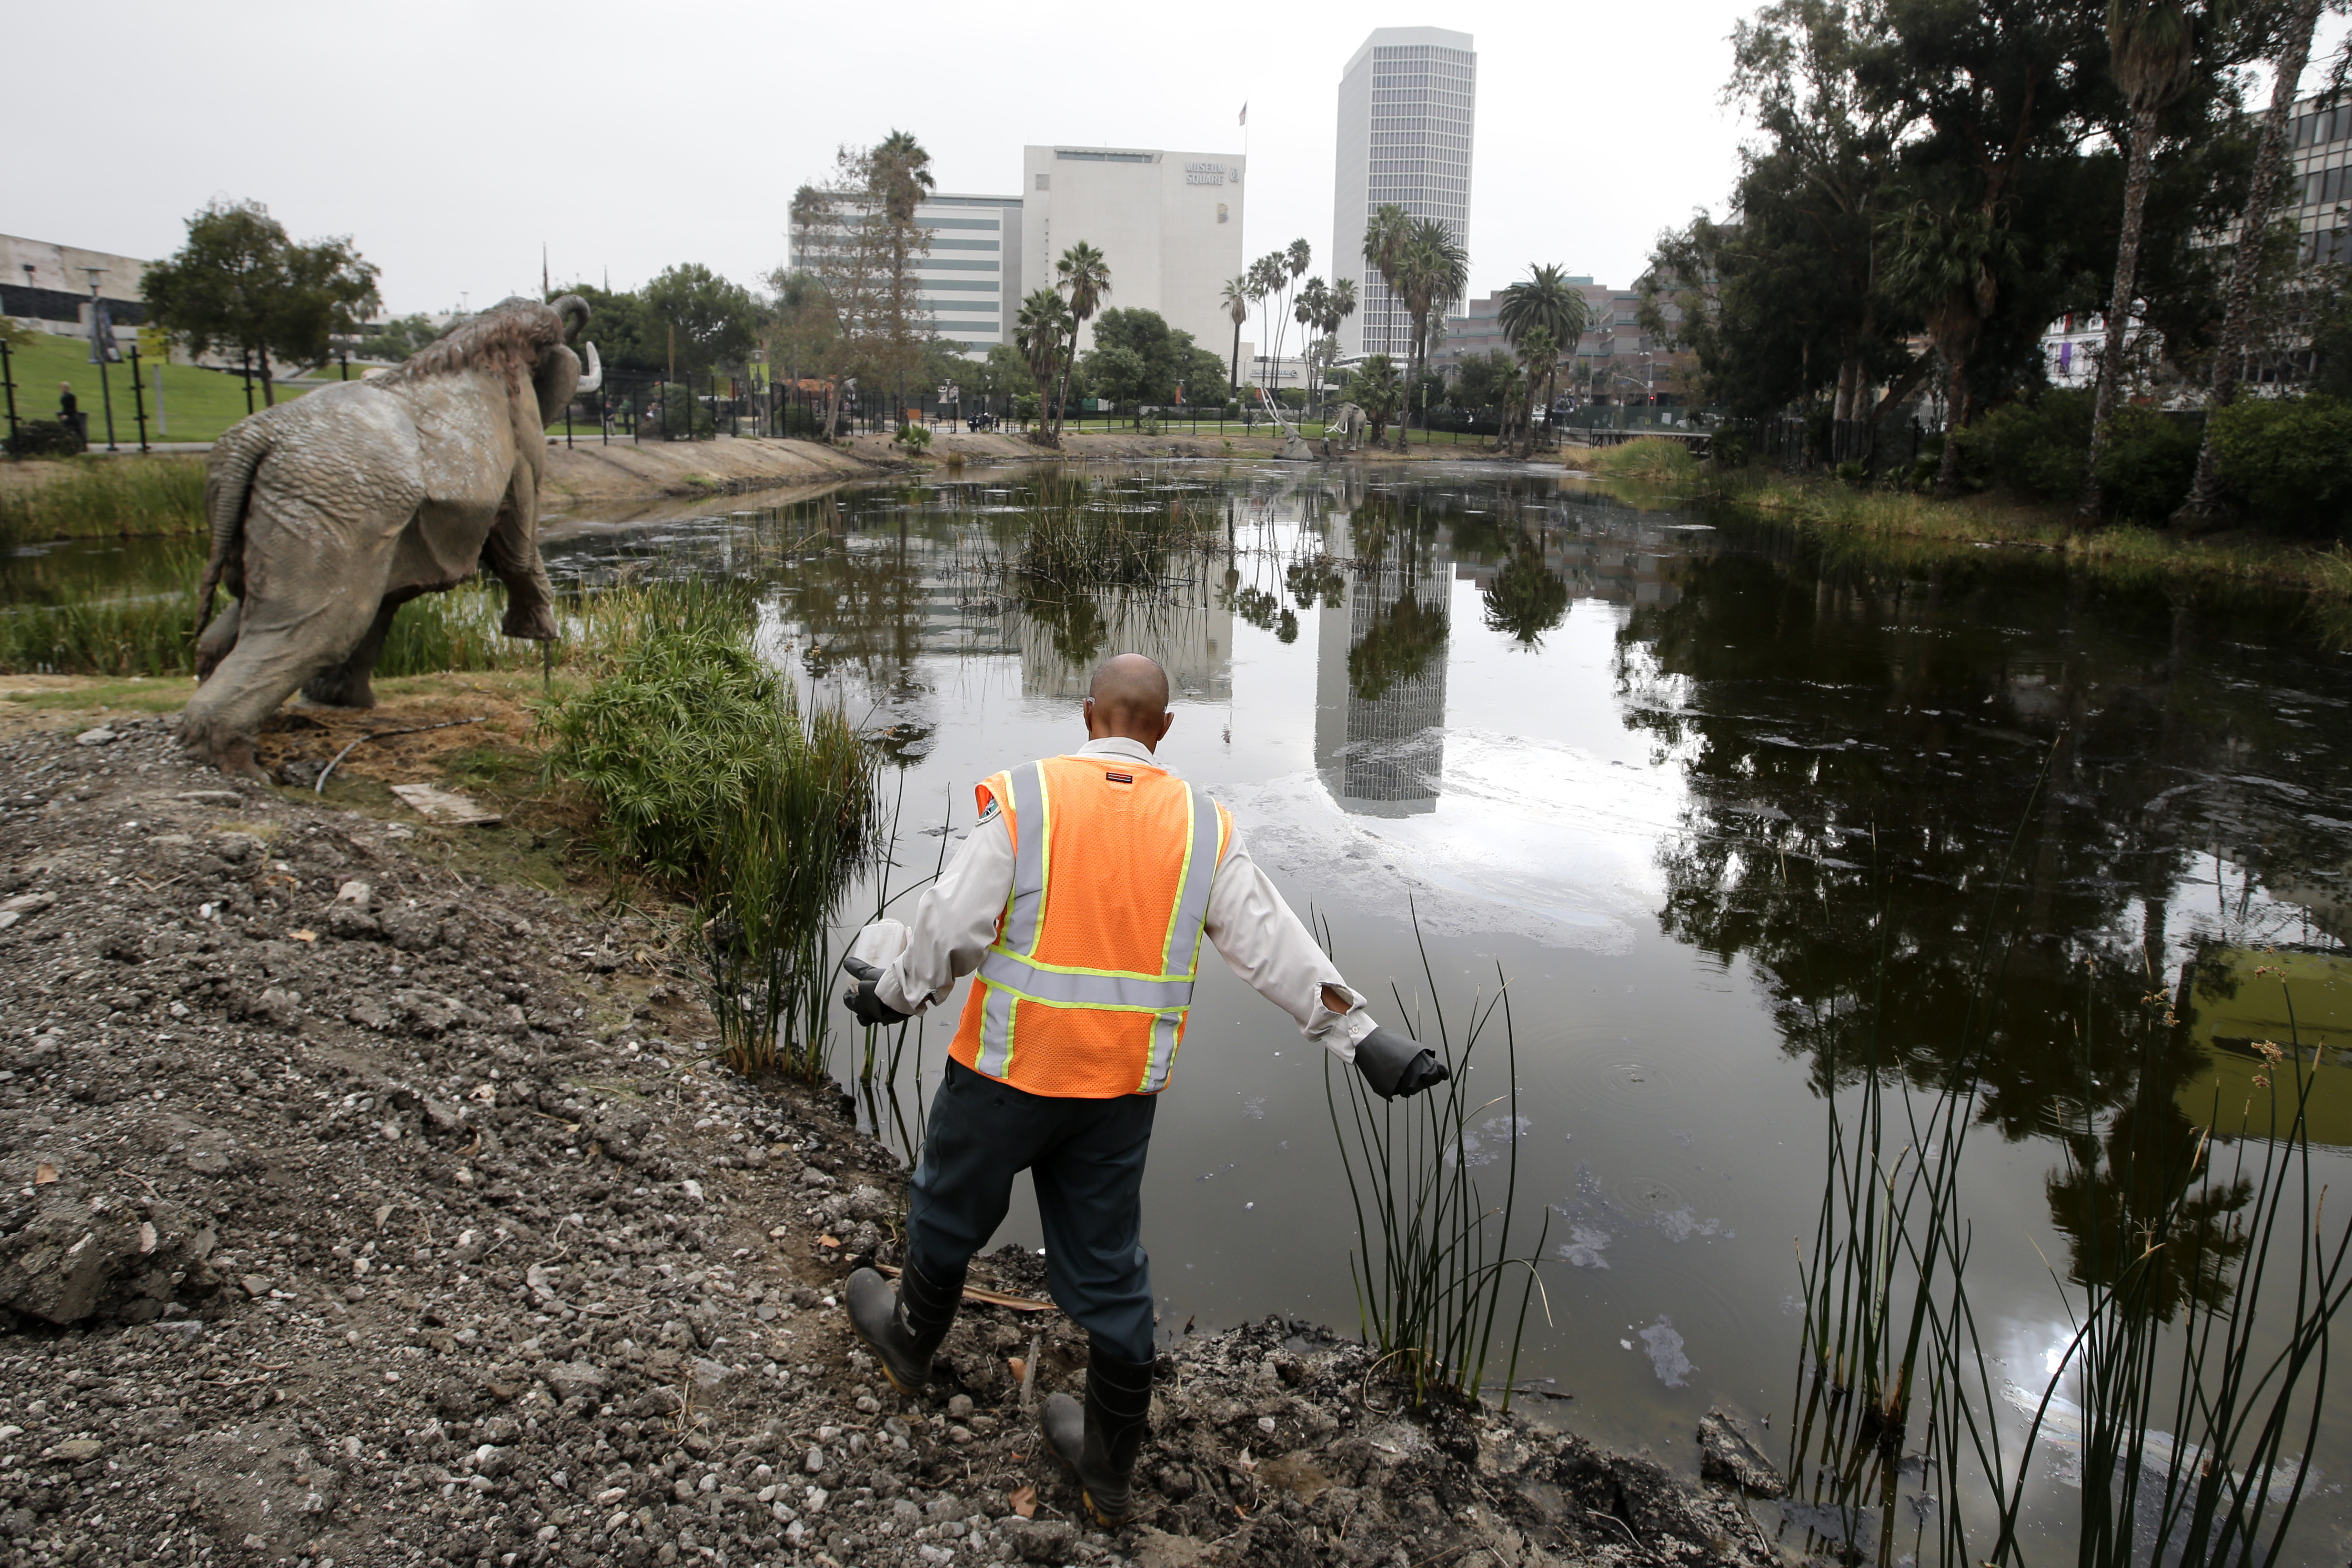 Scientists Dig For Fossils At The La Brea Tar Pits In L A A Century